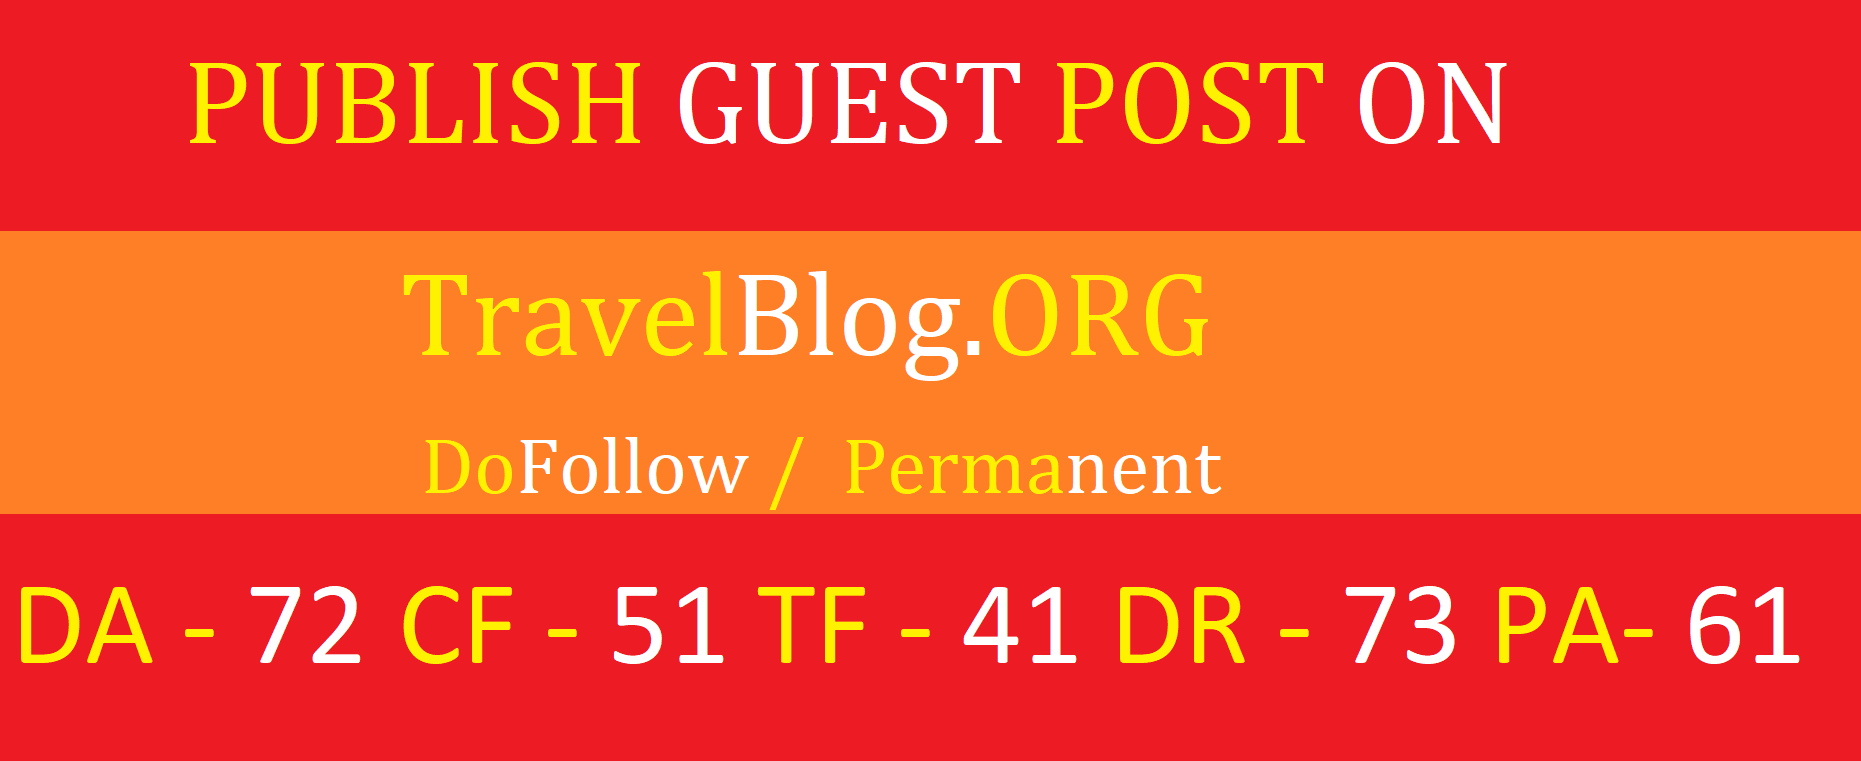 Provide you guest post on TravelBlog. org DA 75